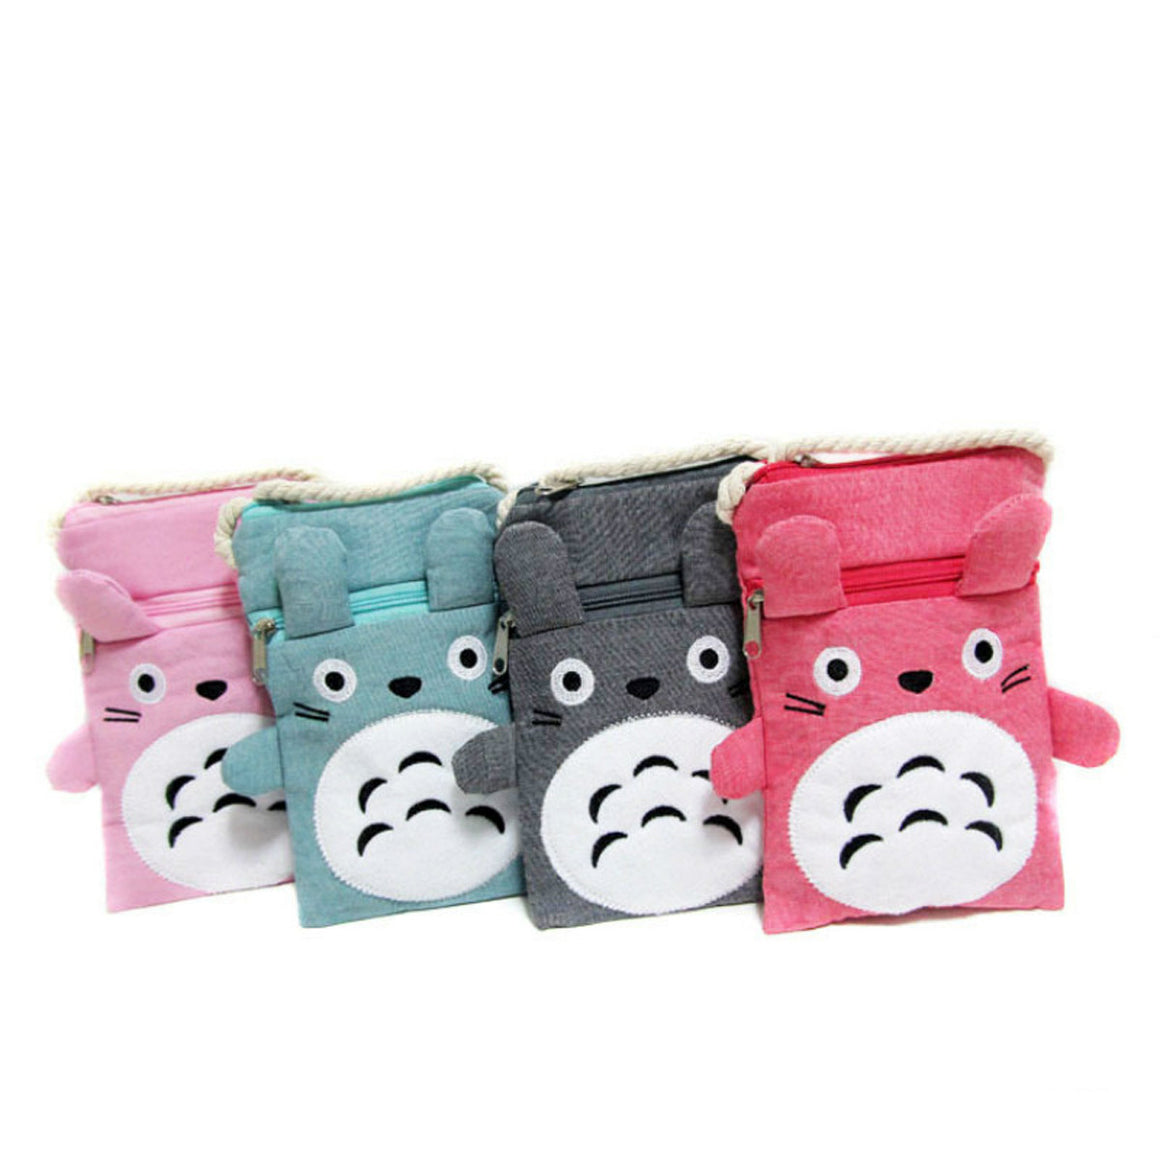 Handmade Multipurpose Coin Purse / Cute Totoro Bag for Mobile